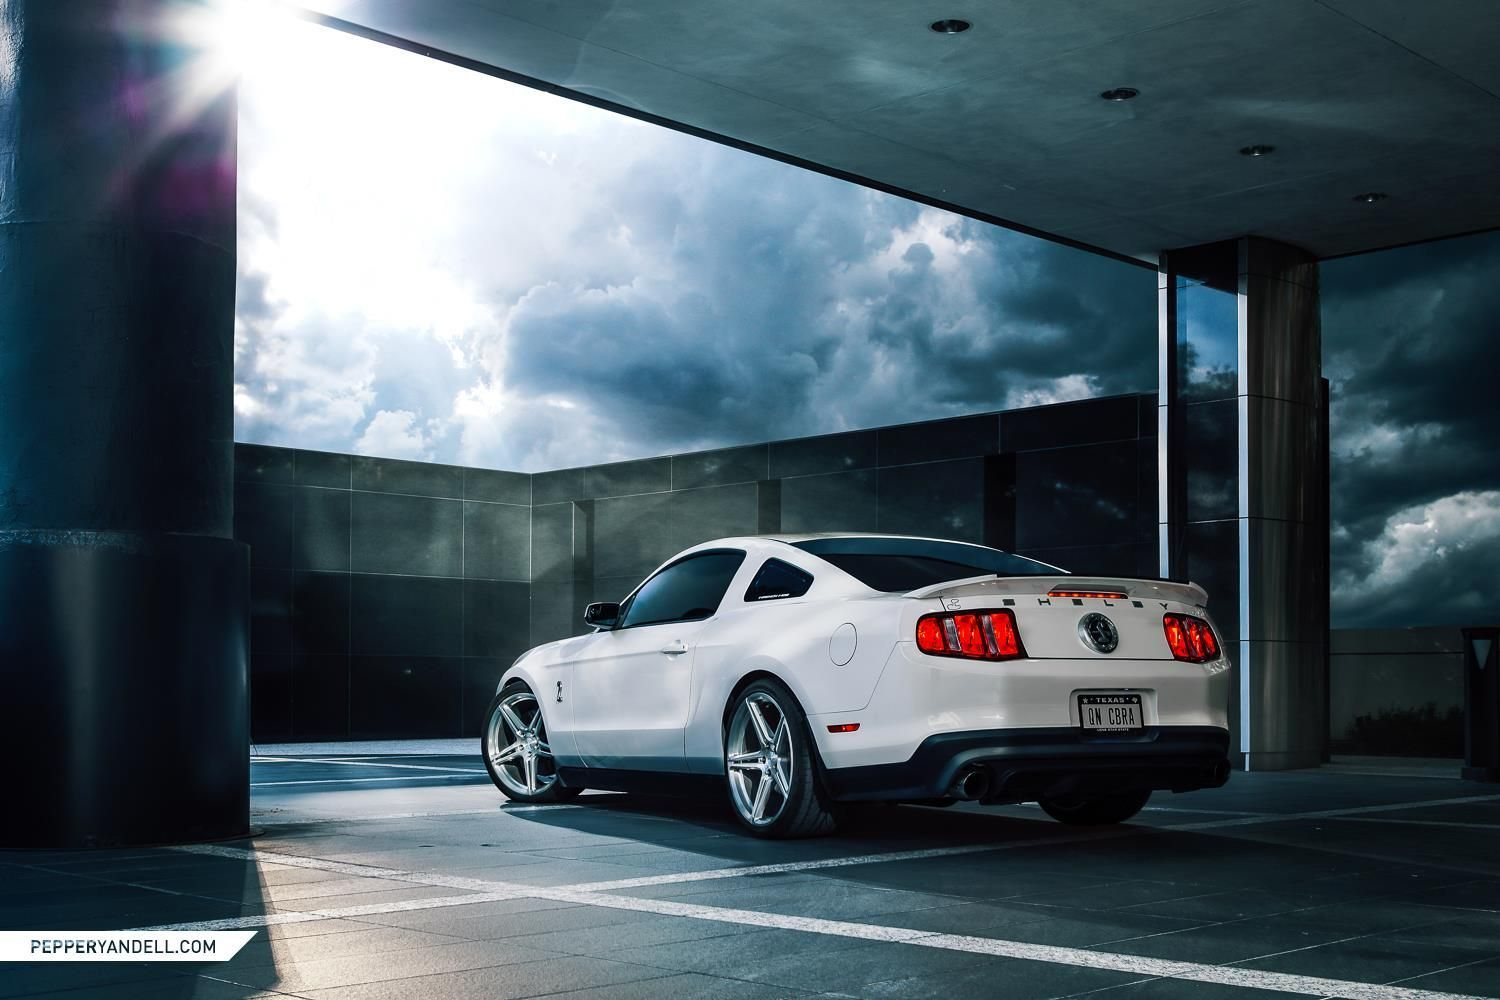 2012 Ford Mustang | Kat Hagen's 2012 Ford Mustang Shelby GT500 on Forgeline One Piece Forged Monoblock SC1 Wheels